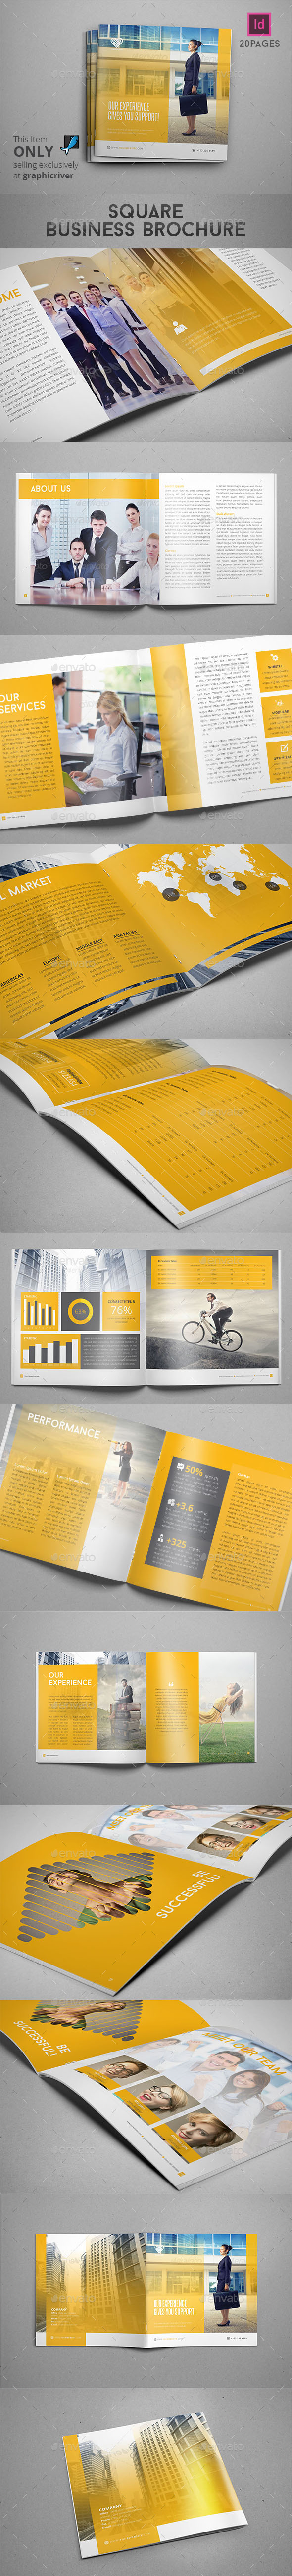 GraphicRiver Square Business Brochure 9754518